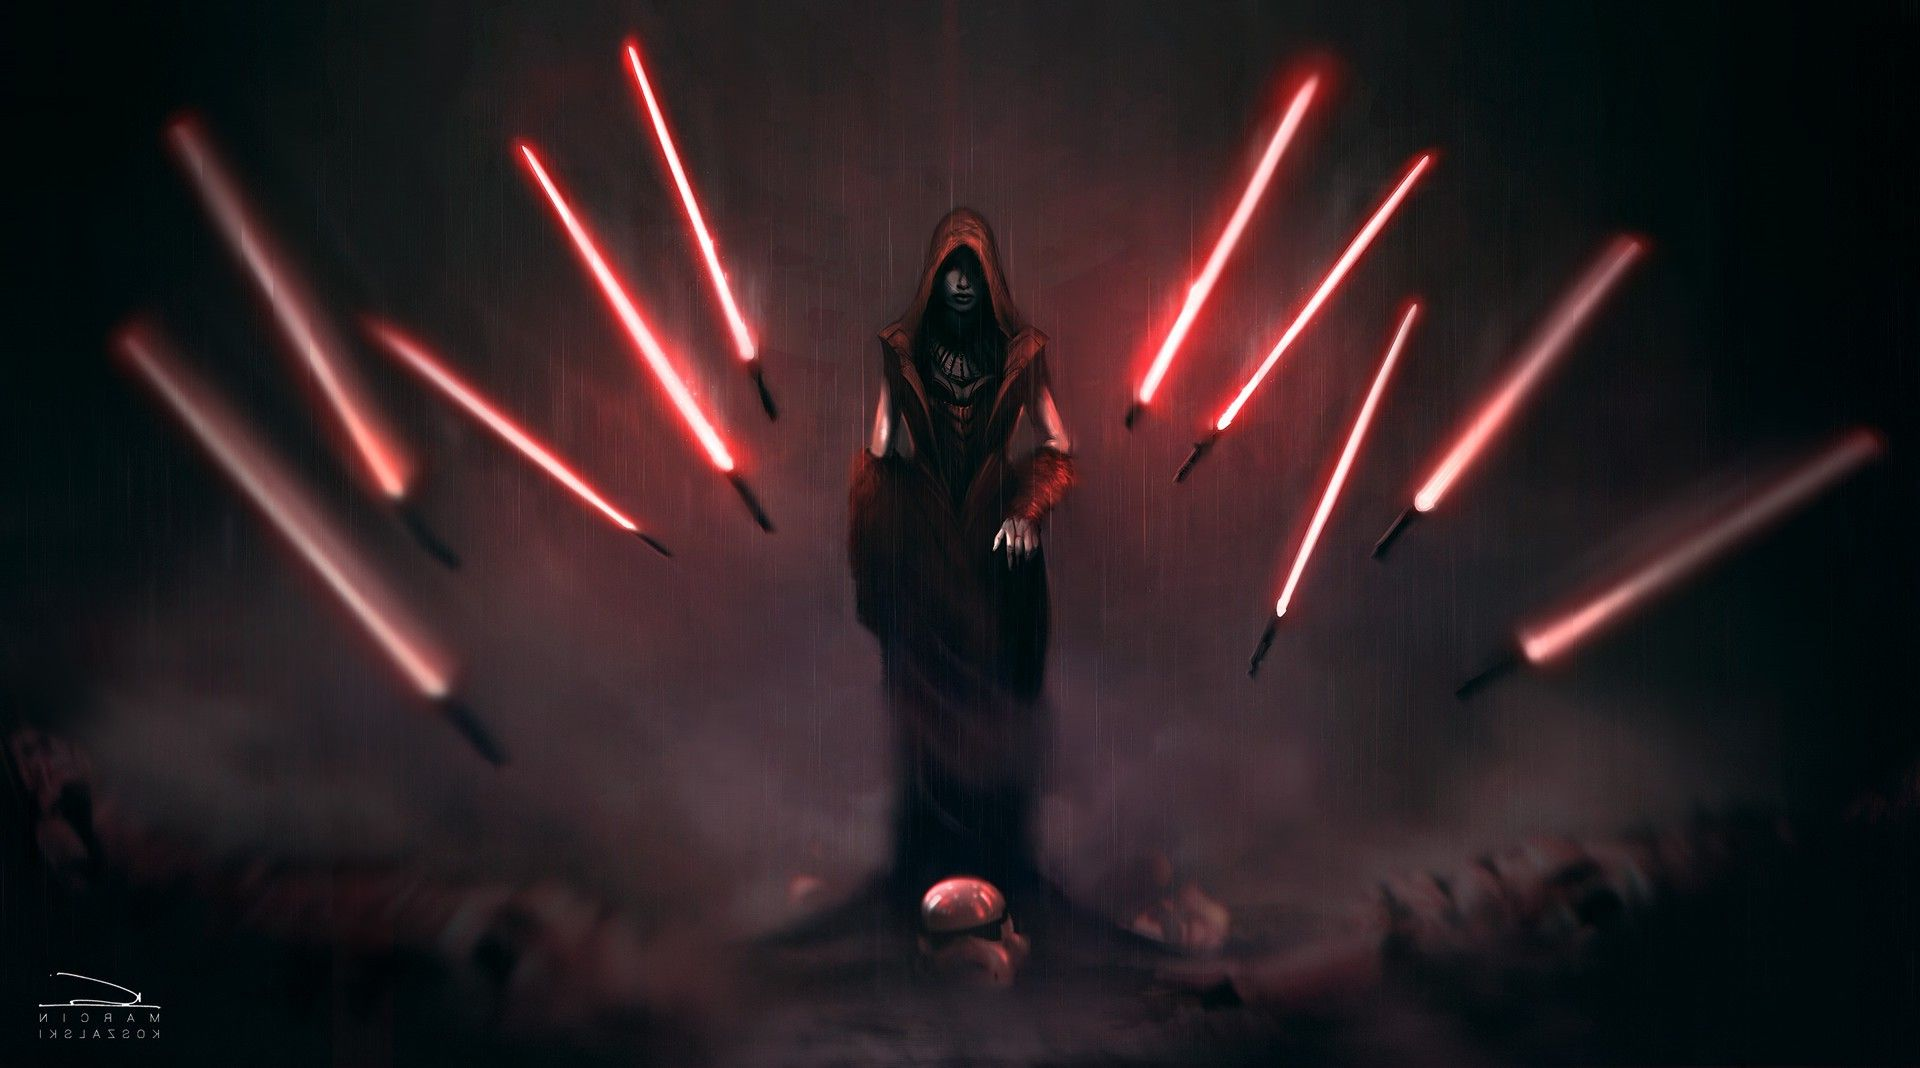 Sith Star Wars Phone Wallpapers Top Free Sith Star Wars Phone